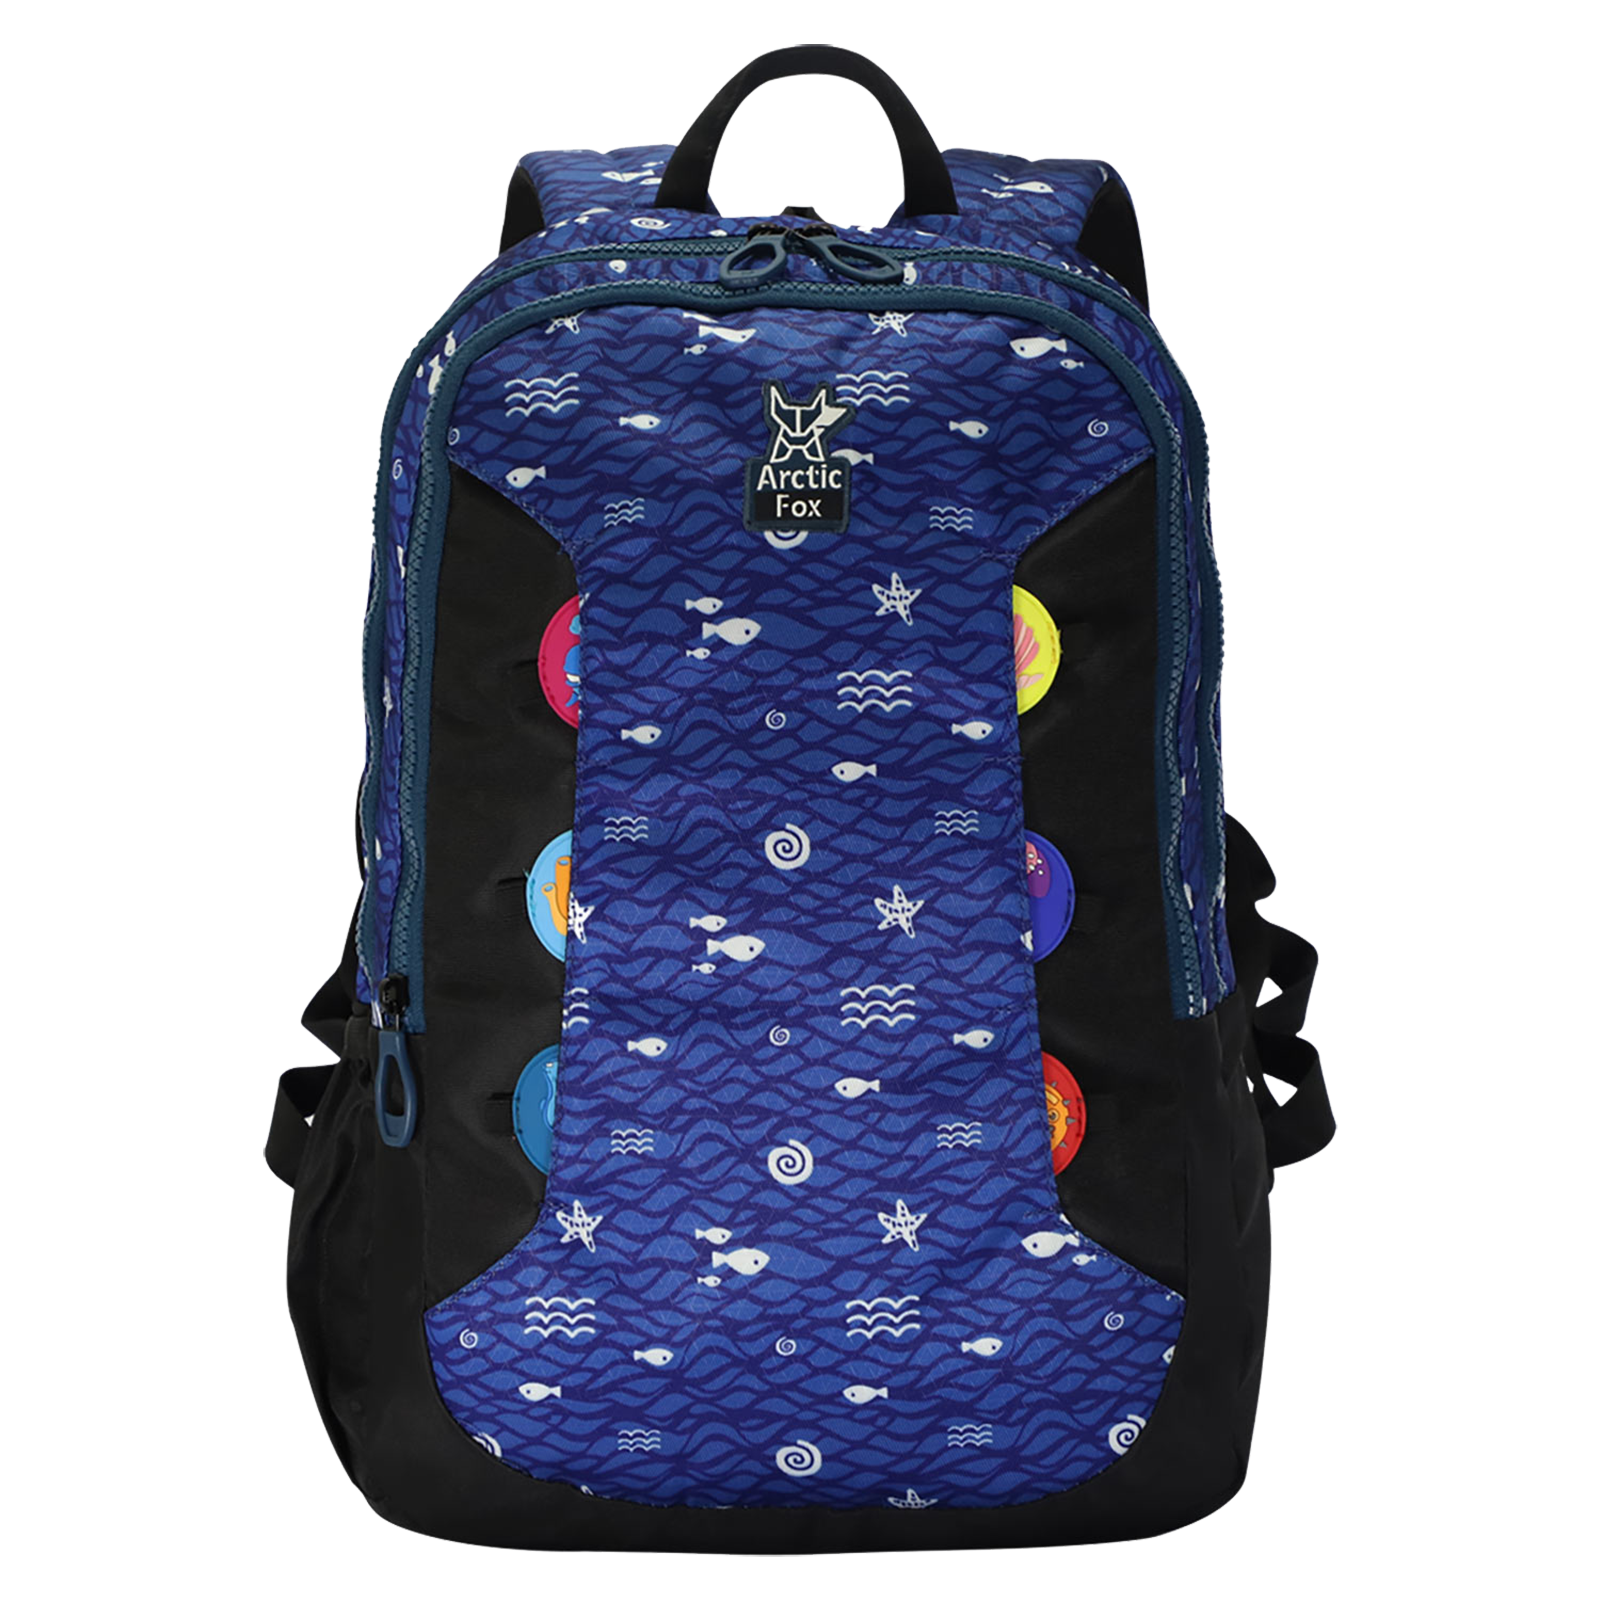 Arctic Fox 20 Litres Twill Polyester Kids Backpack (Water Repellent Fabric, FKIBPKSEAON010020, Blue)_1